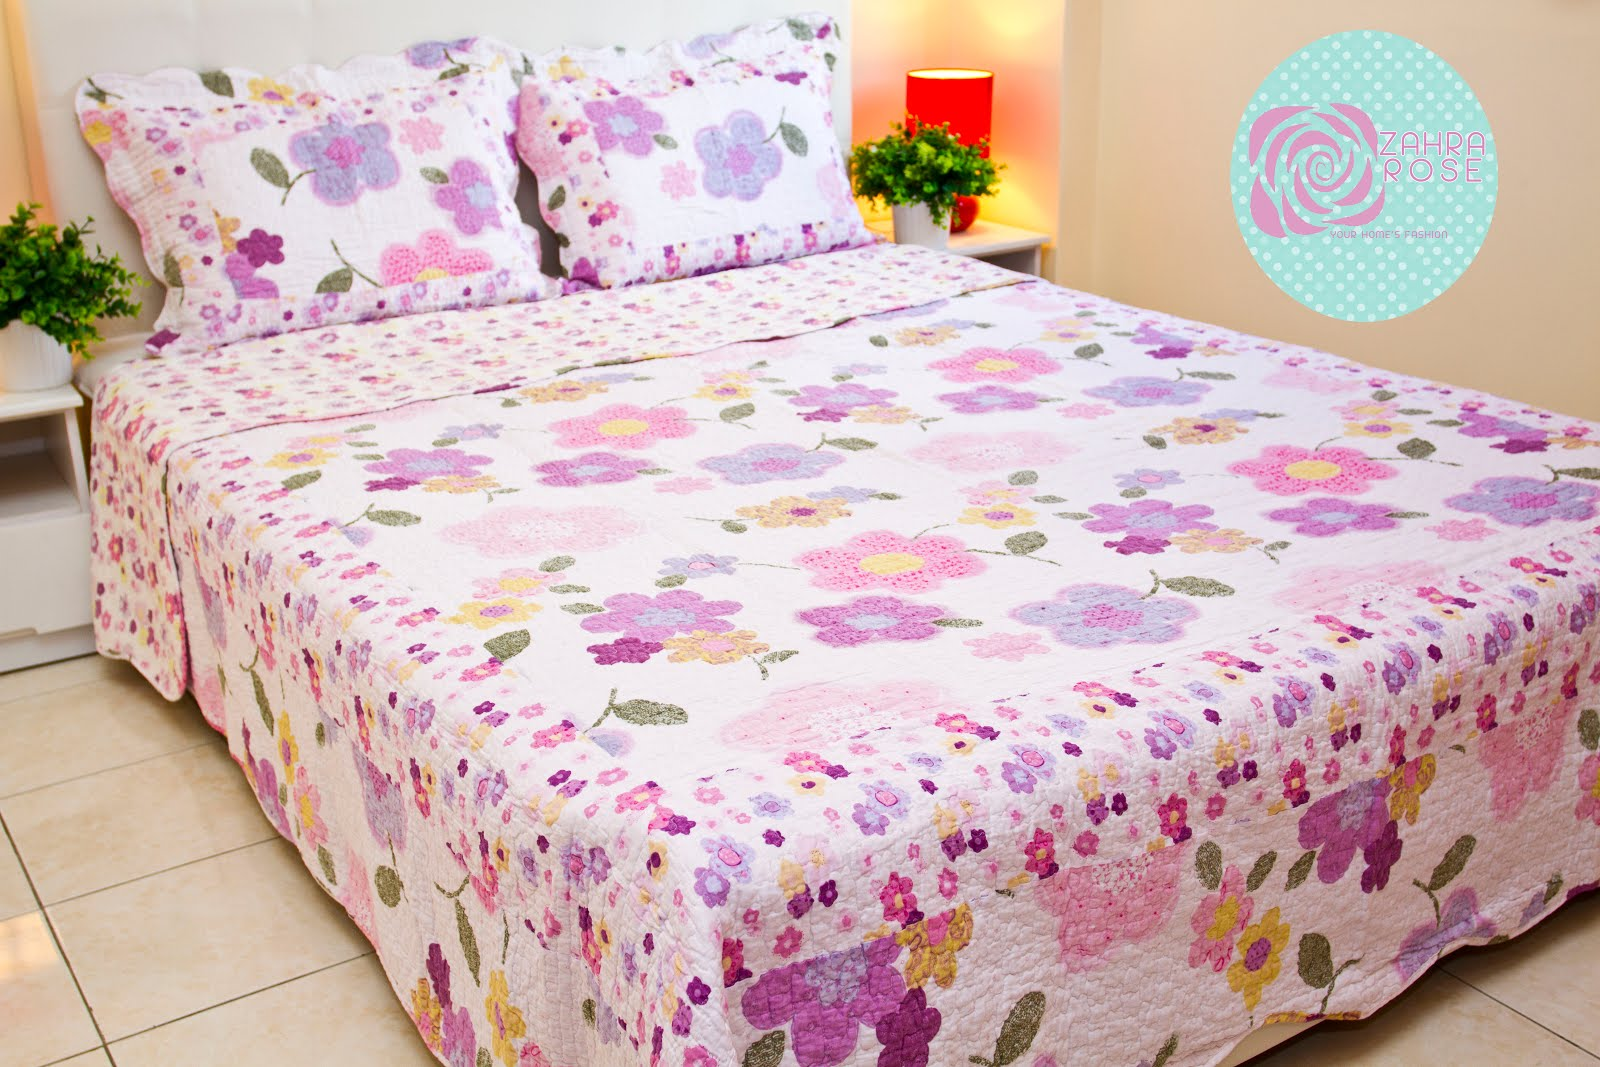 Bed sheets designs patchwork - Zr 005